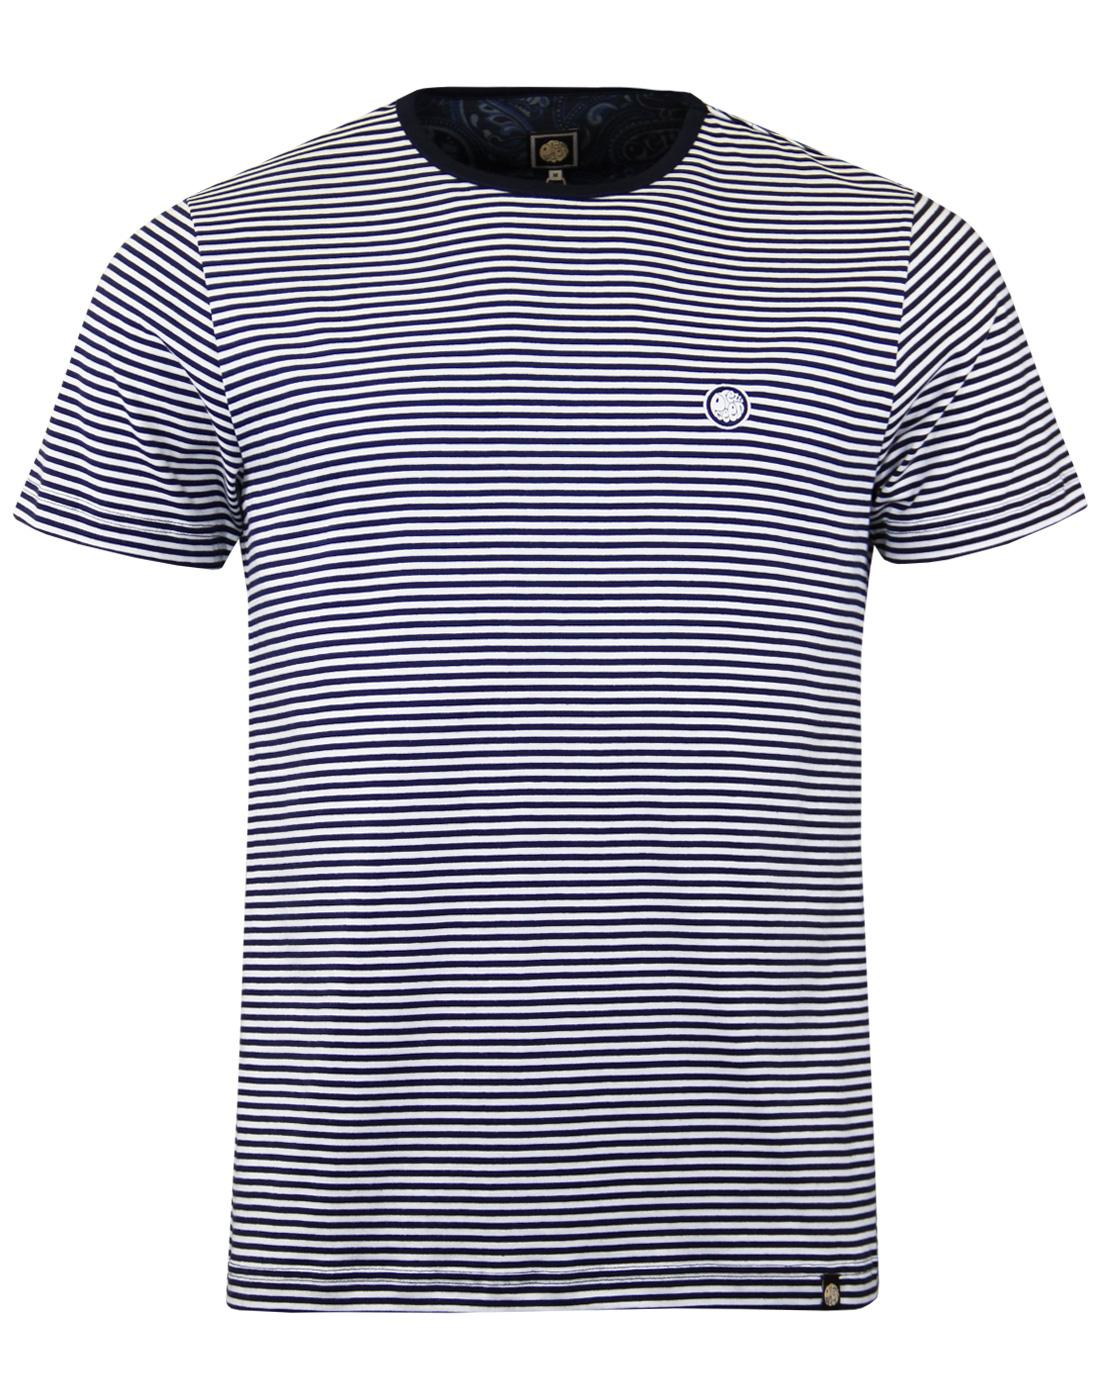 Summerbee PRETTY GREEN Retro Mod Feeder Stripe Tee